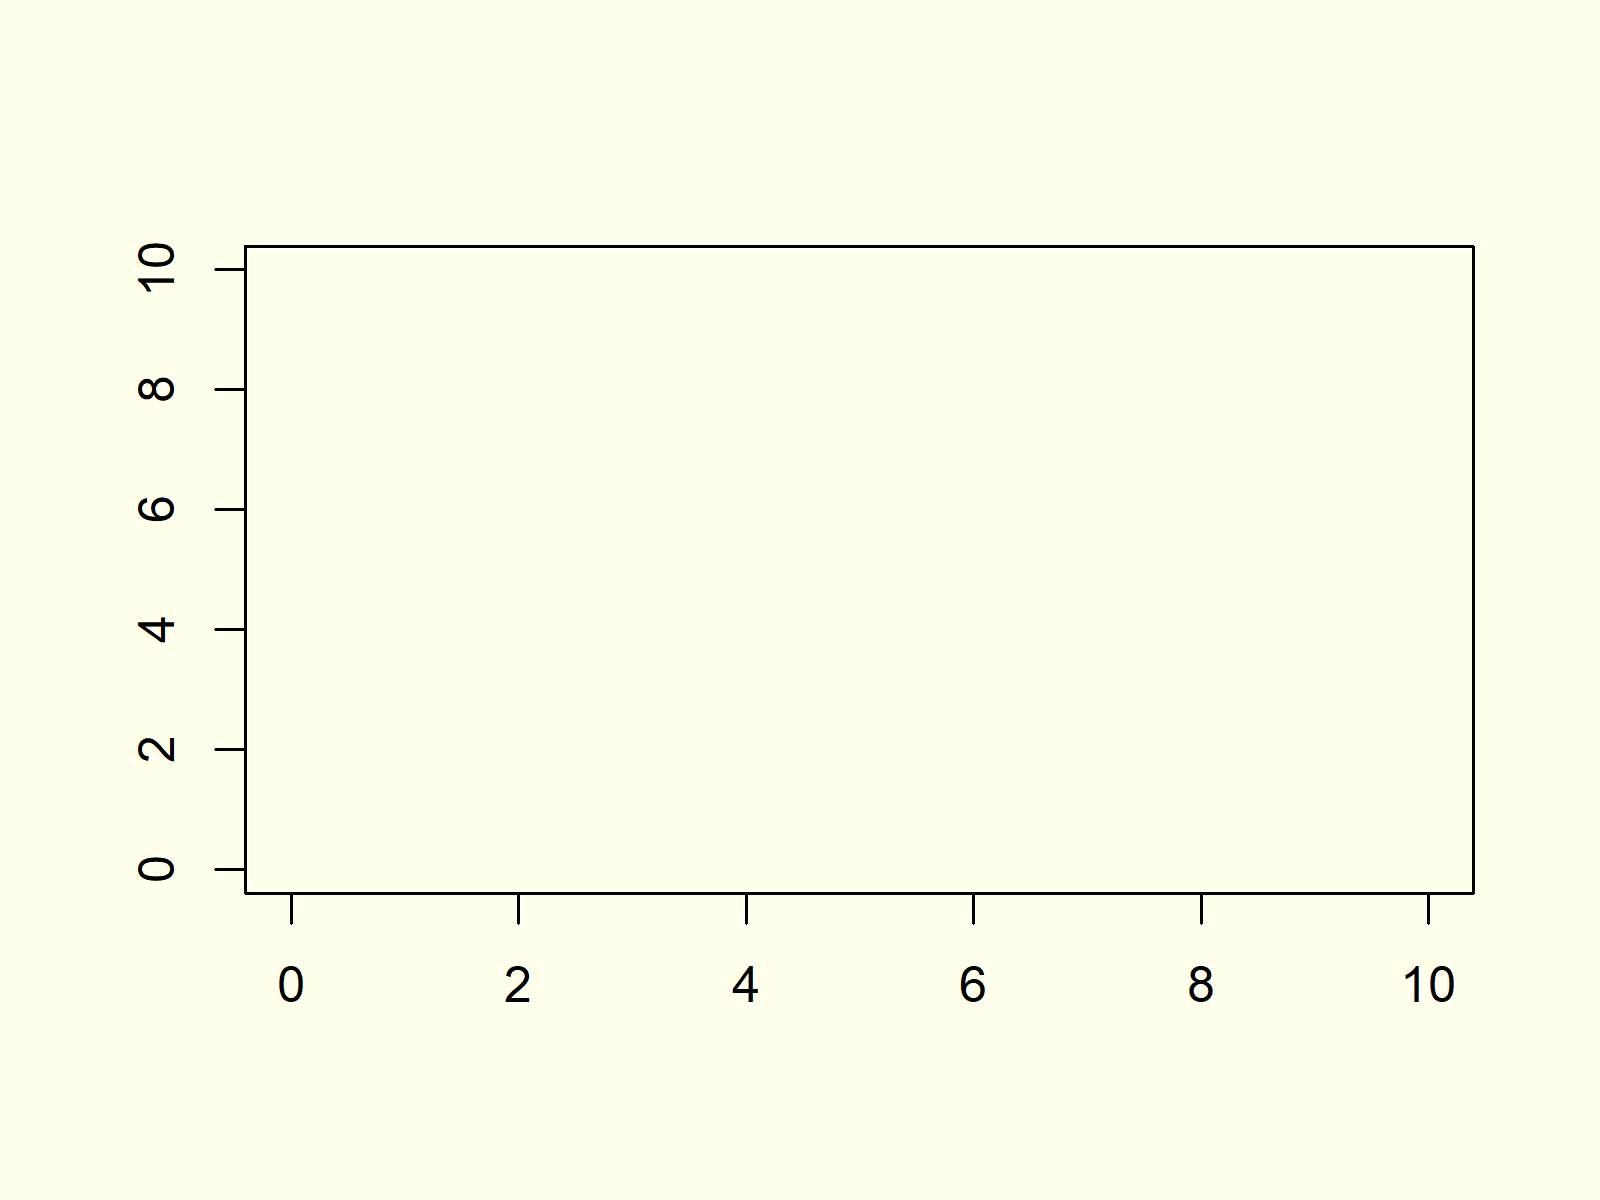 drawing empty plot in r